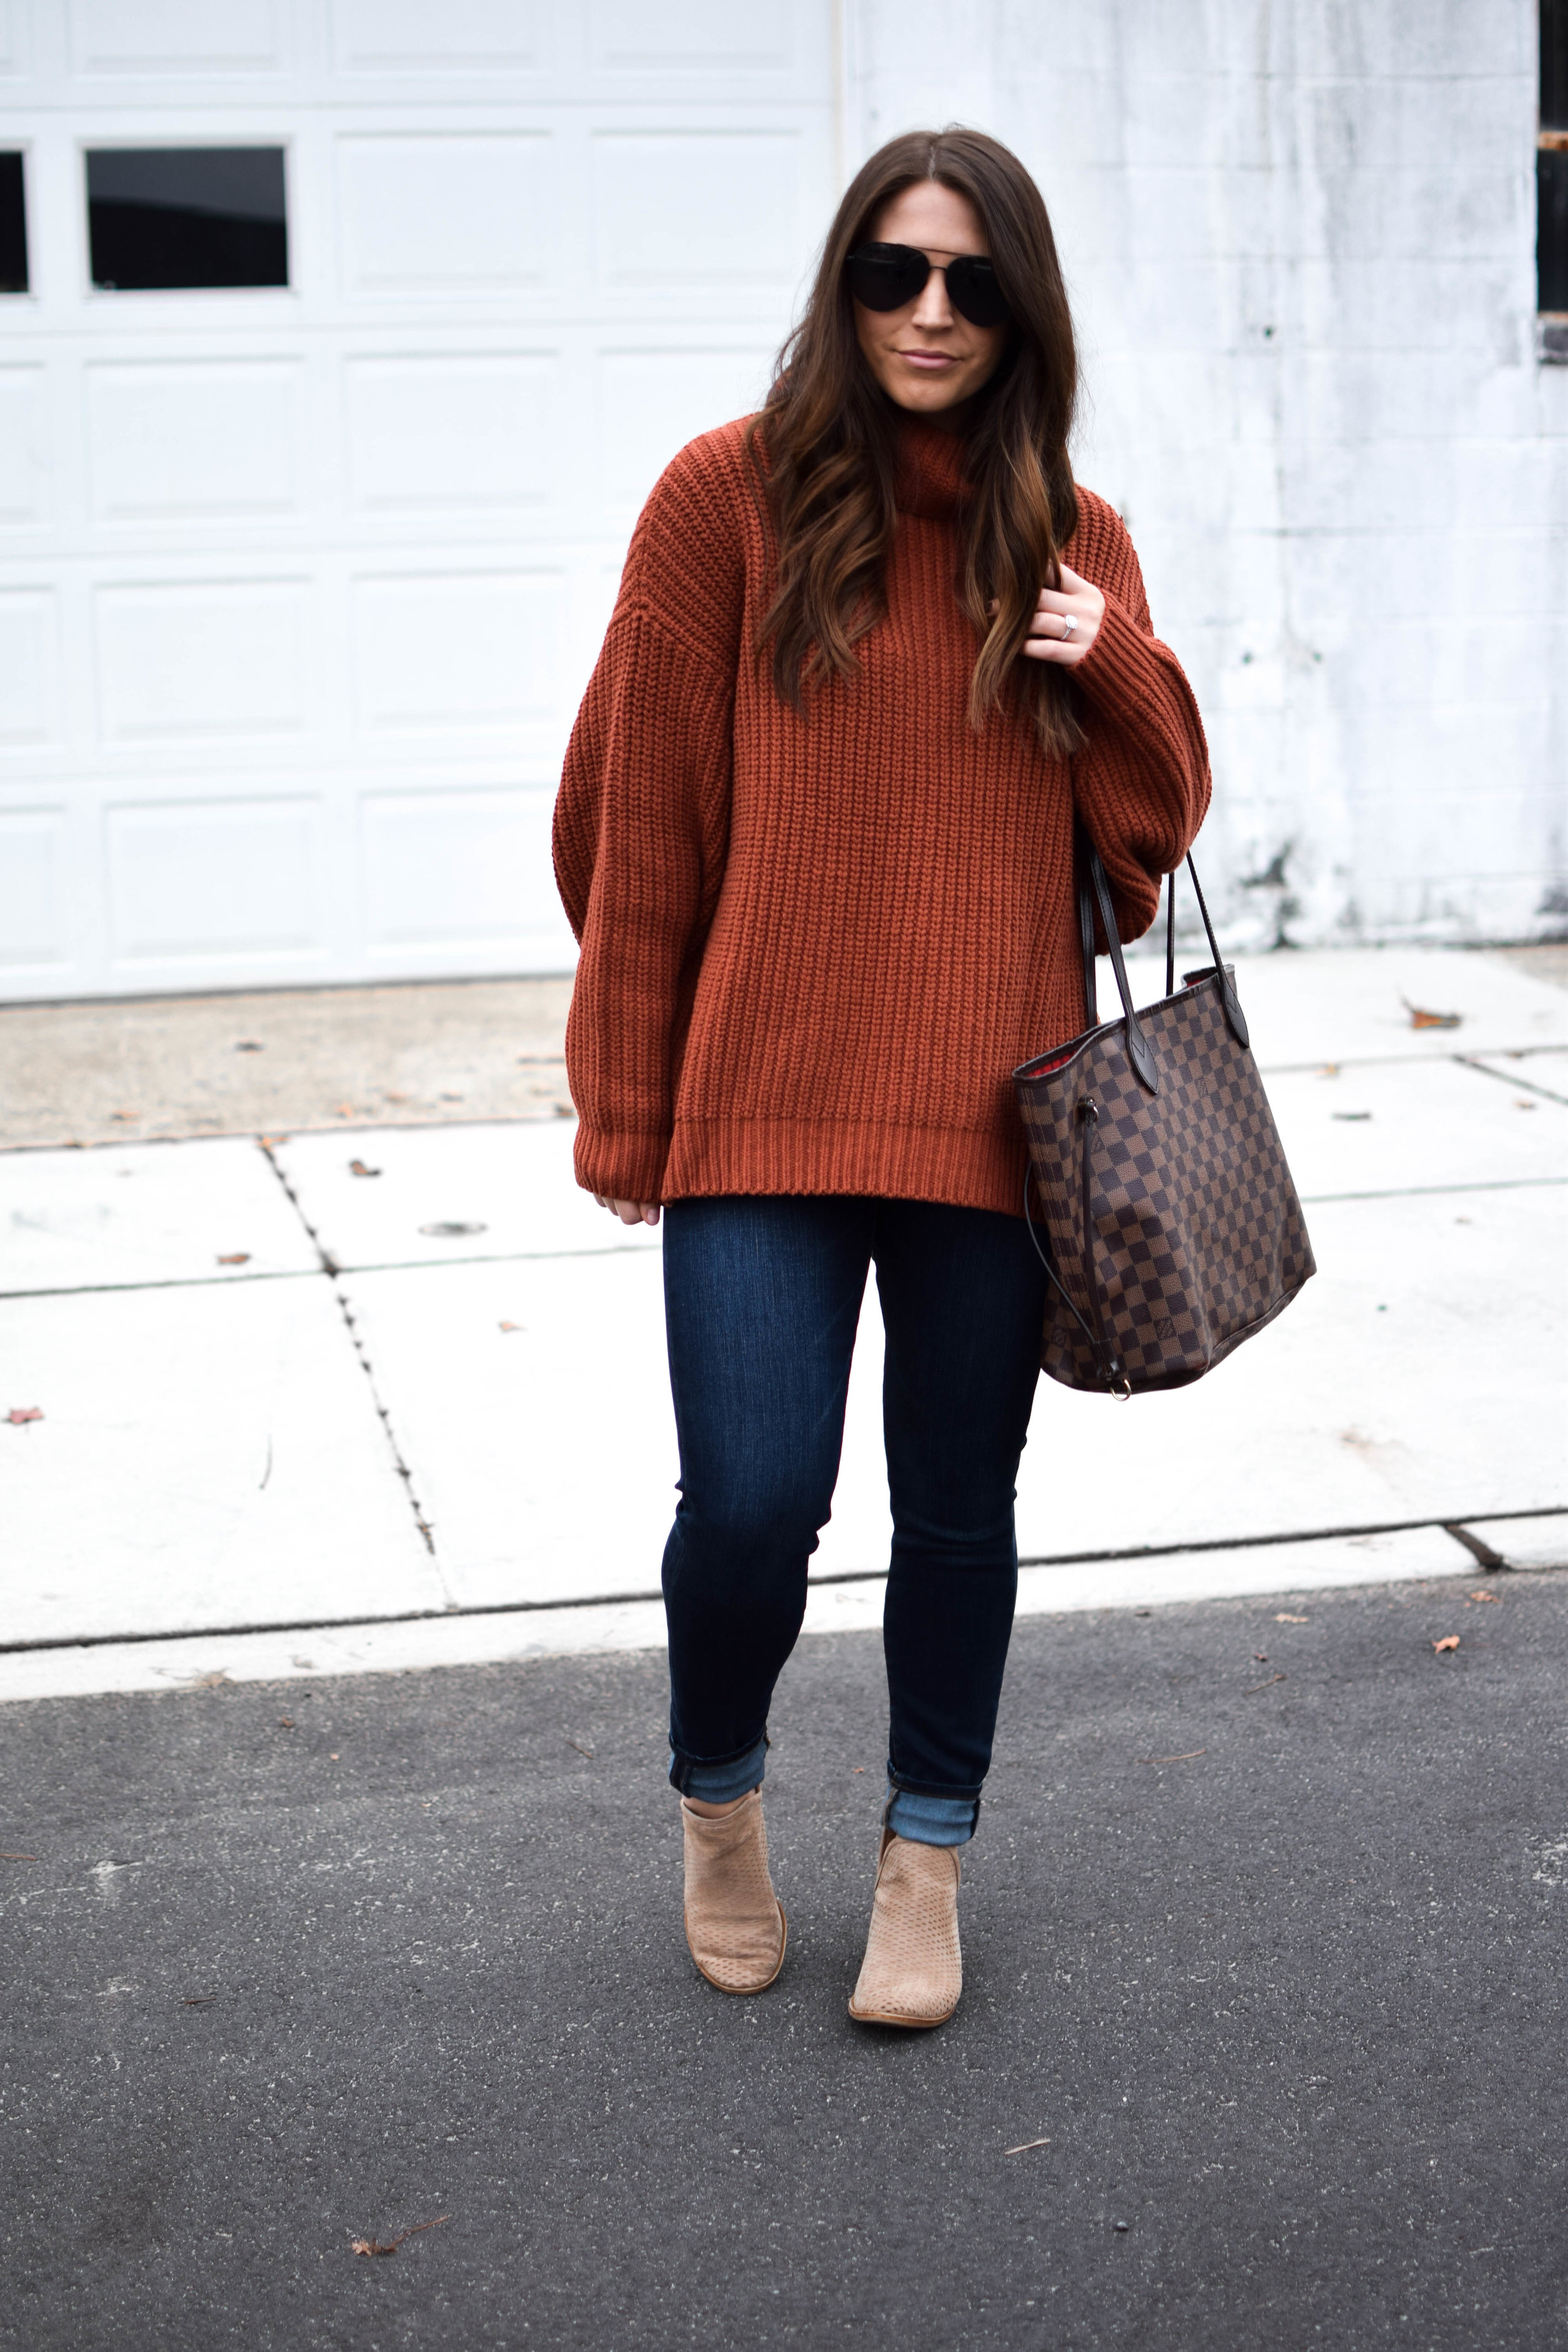 fall fashion / fall outfit idea / fall outfit inspiration / looks to recreate this fall / oversized sweater / styling burnt orange for fall